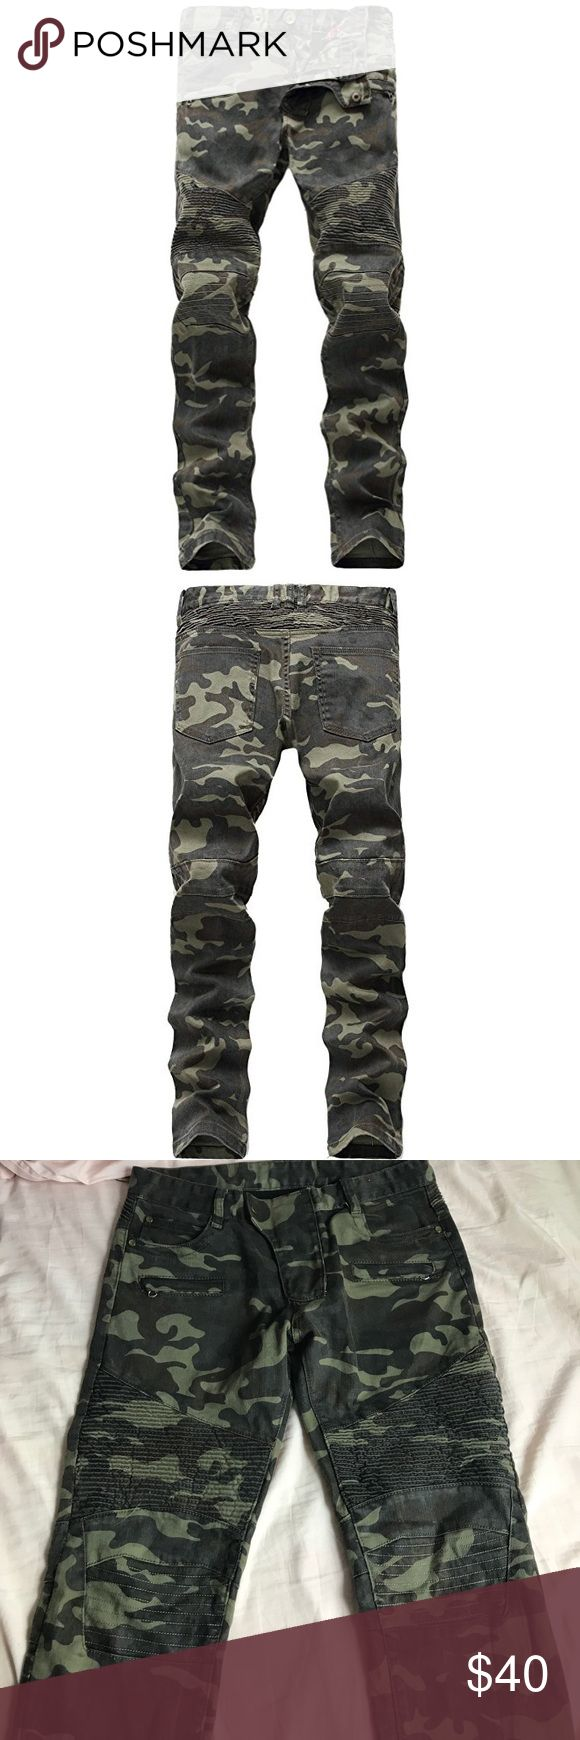 Camouflage skinny jeans PERFECT CONDITION. NEVER WORN. Camo and biker style skinny jeans. Size 32 32. Men's boutique purchase Jeans